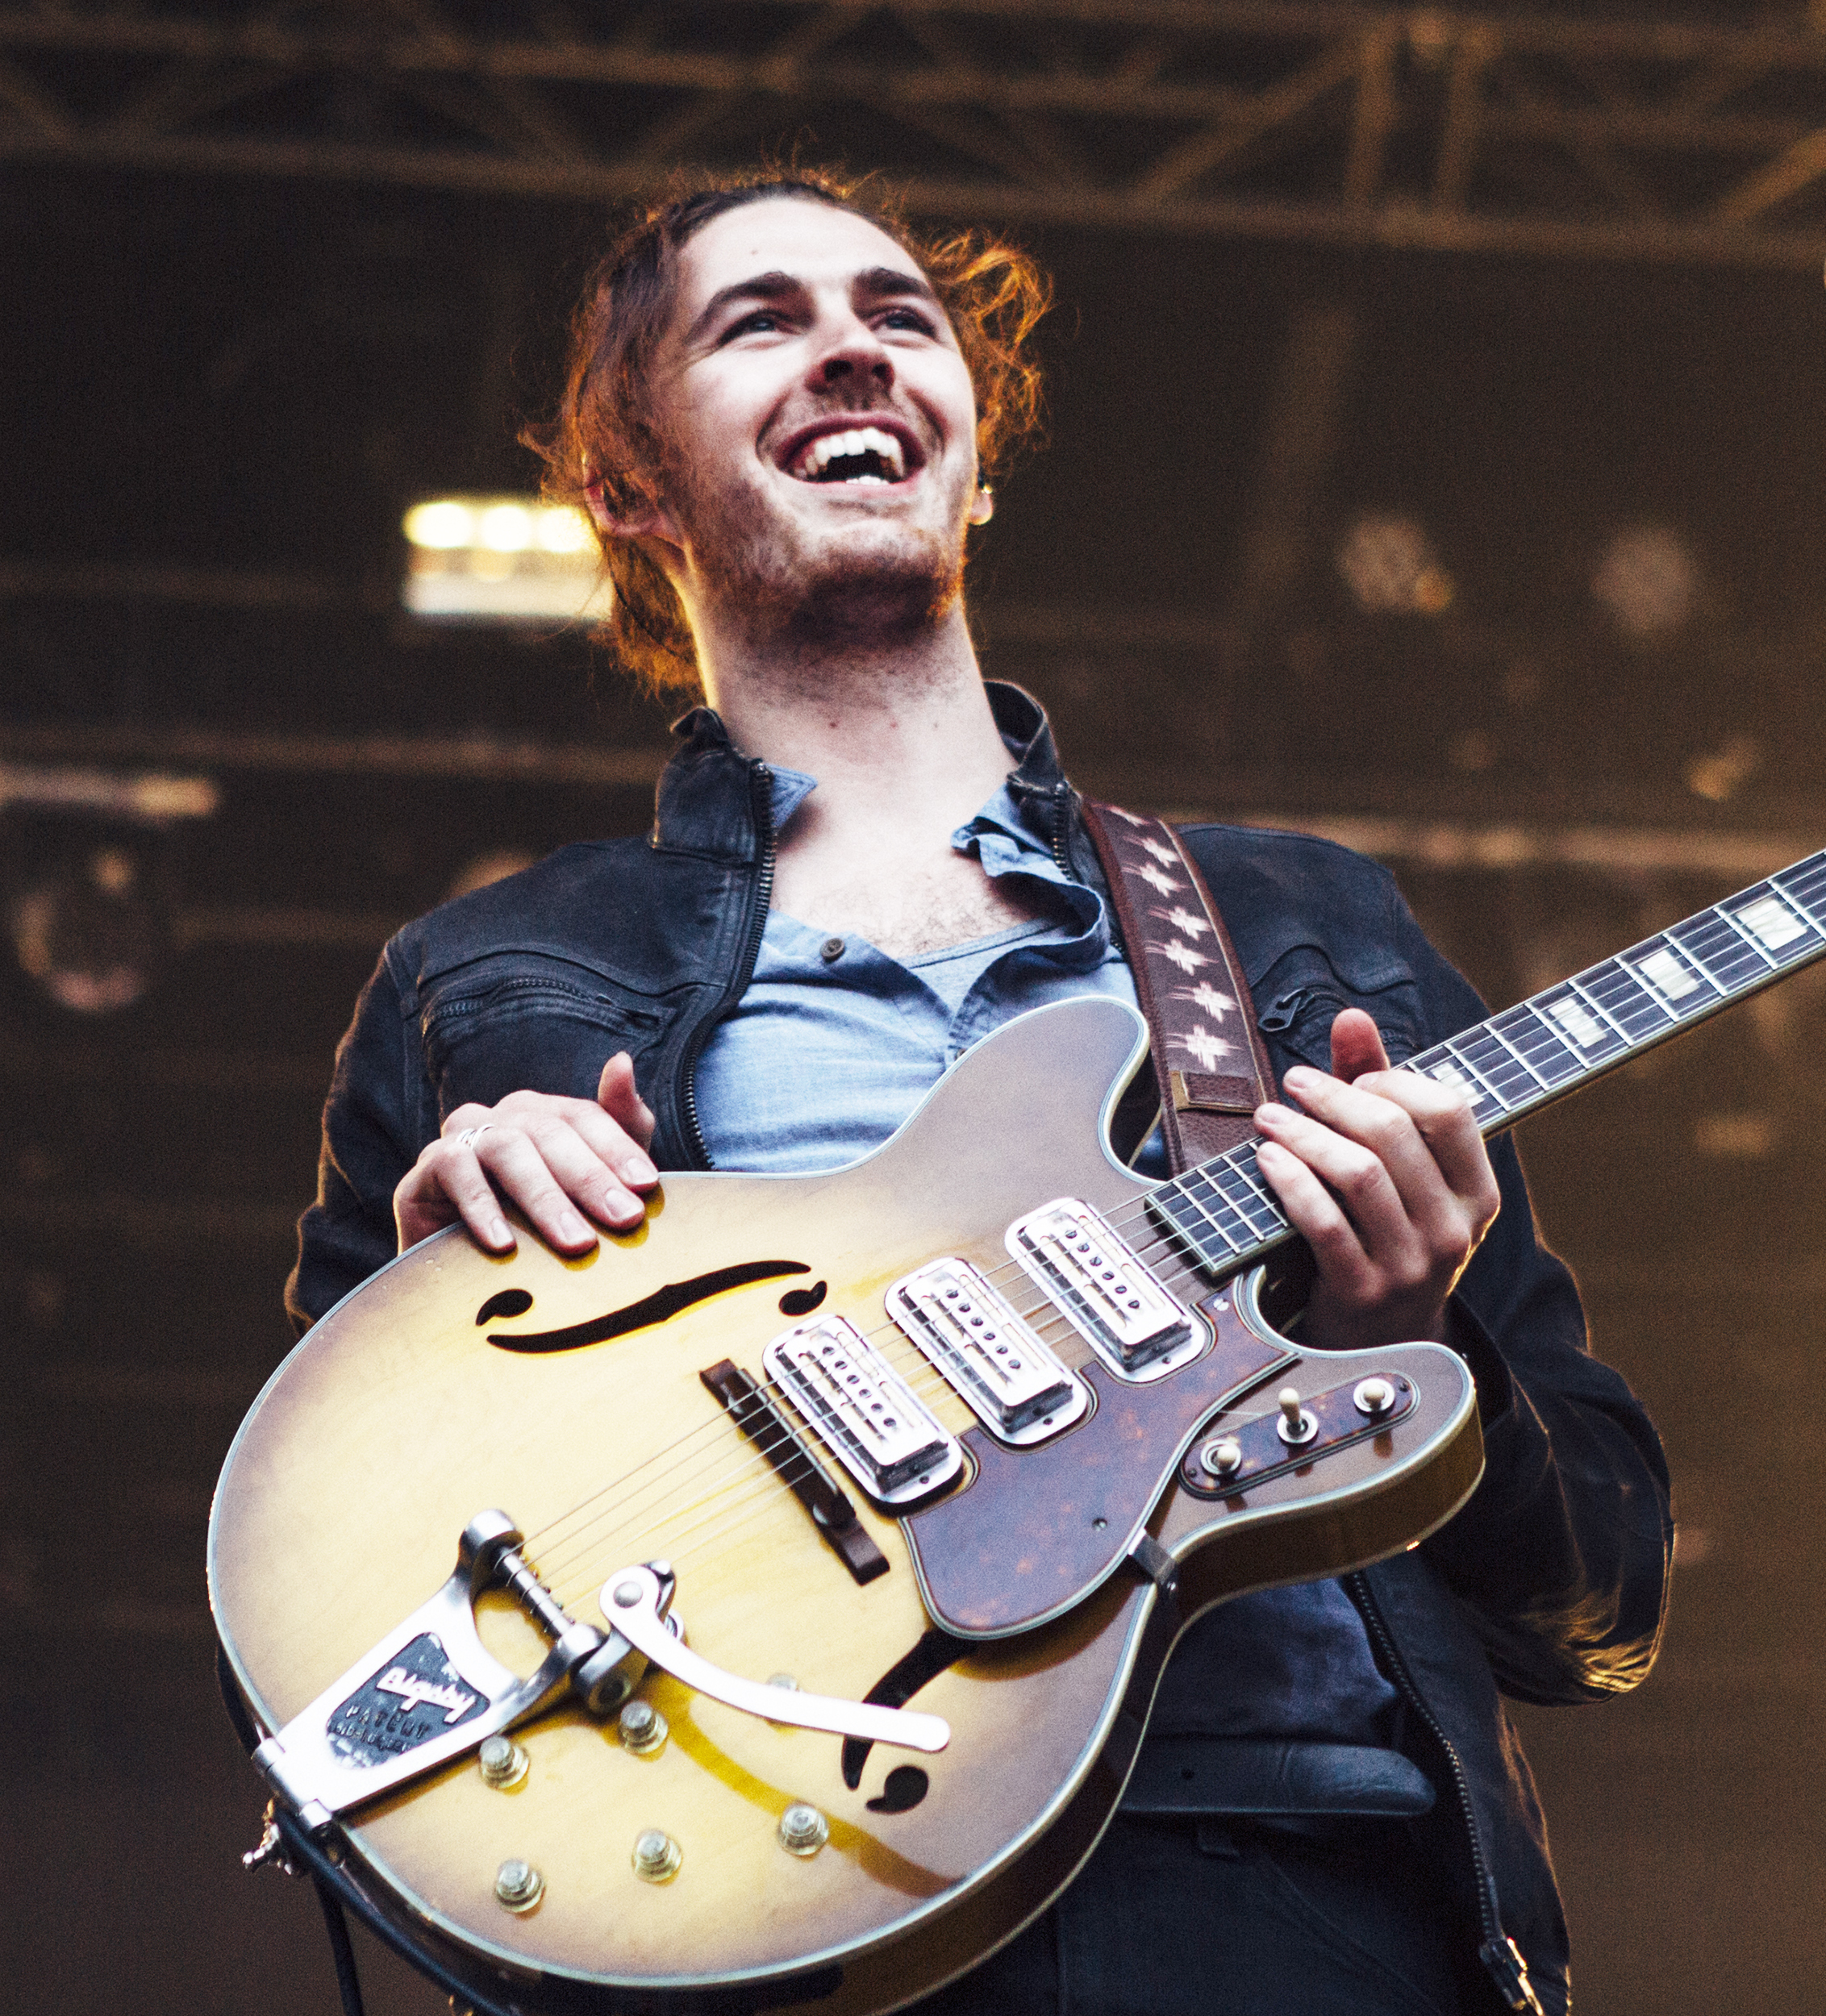 Indie artist Hozier (pictured above) released his sophomore album Wasteland, Baby! on Friday March 1. In this album, Hozier follows the sound of his previous music, but delves deeper into introspection (courtesy of Creative Commons).